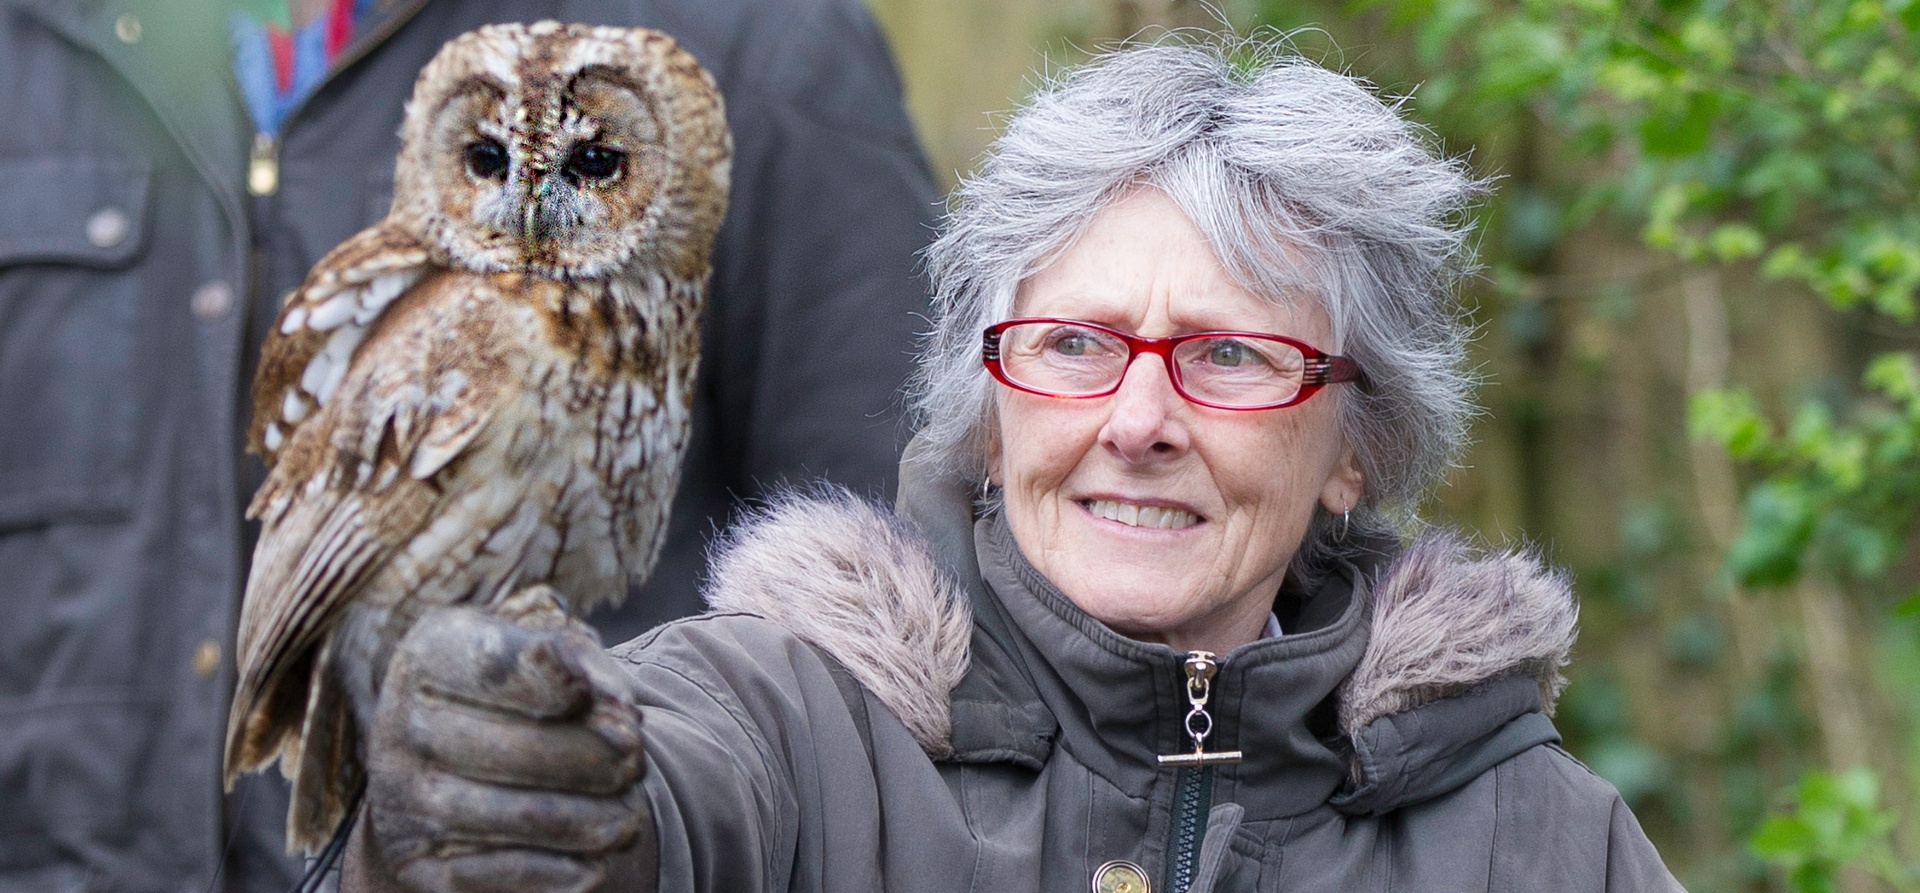 Half Day Falconry And Owl Experience - Northampton-5